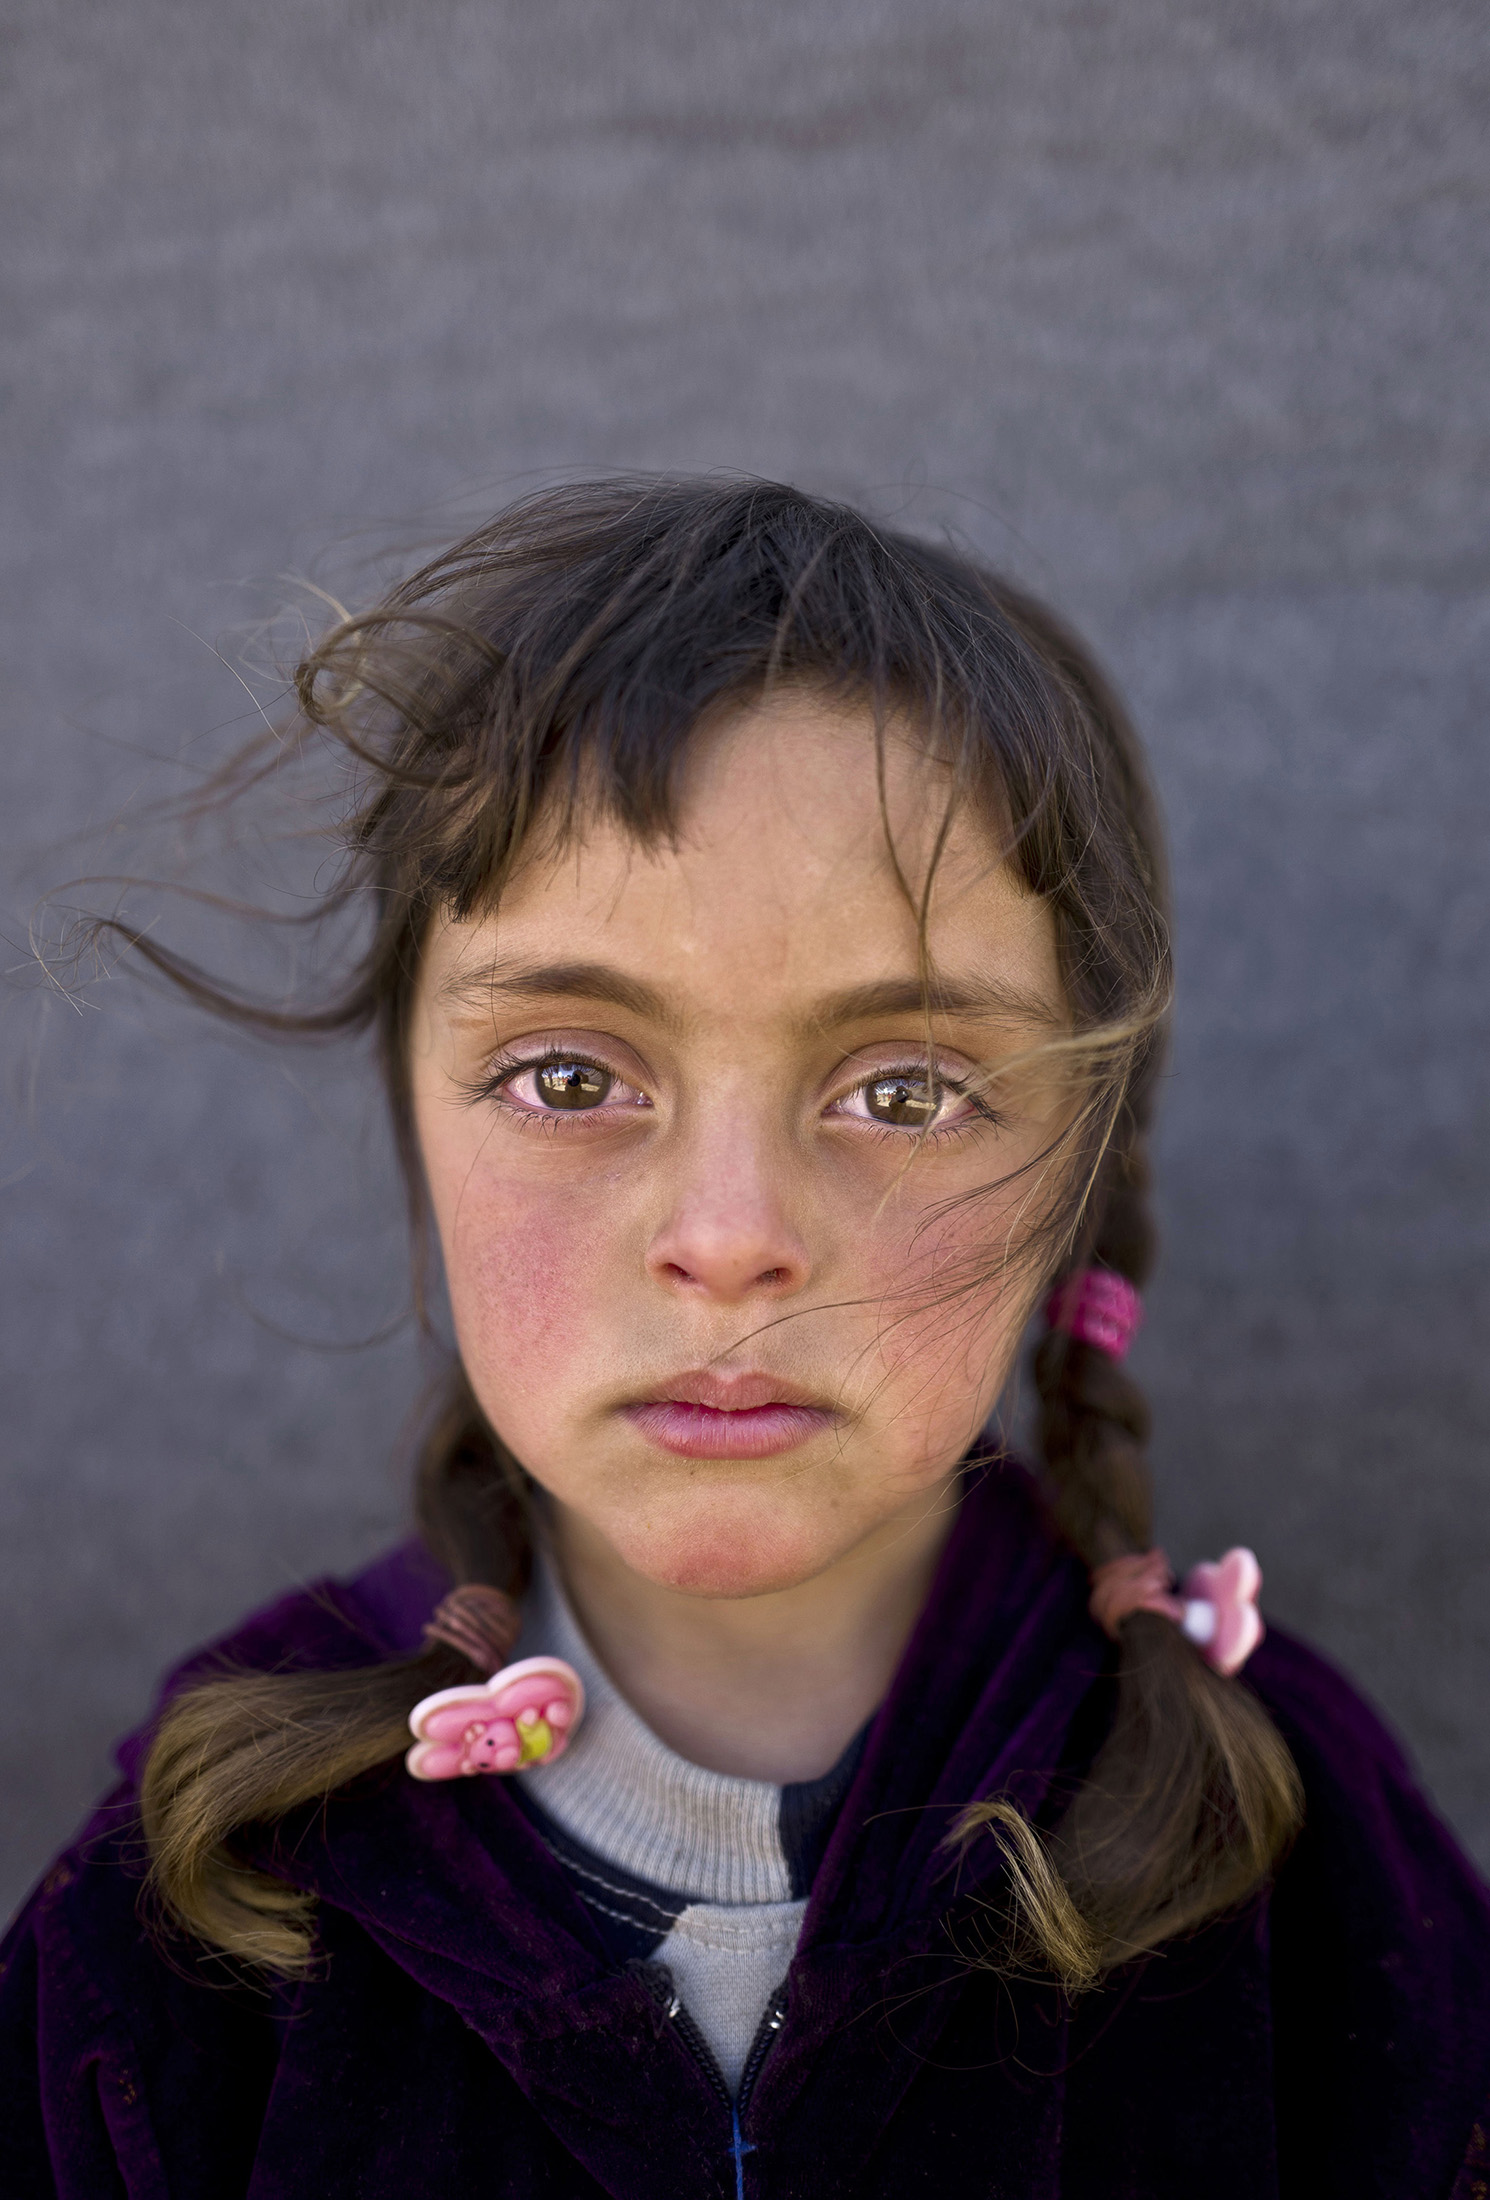 UNICEF Picture of the Year: The face of a tormented childhood